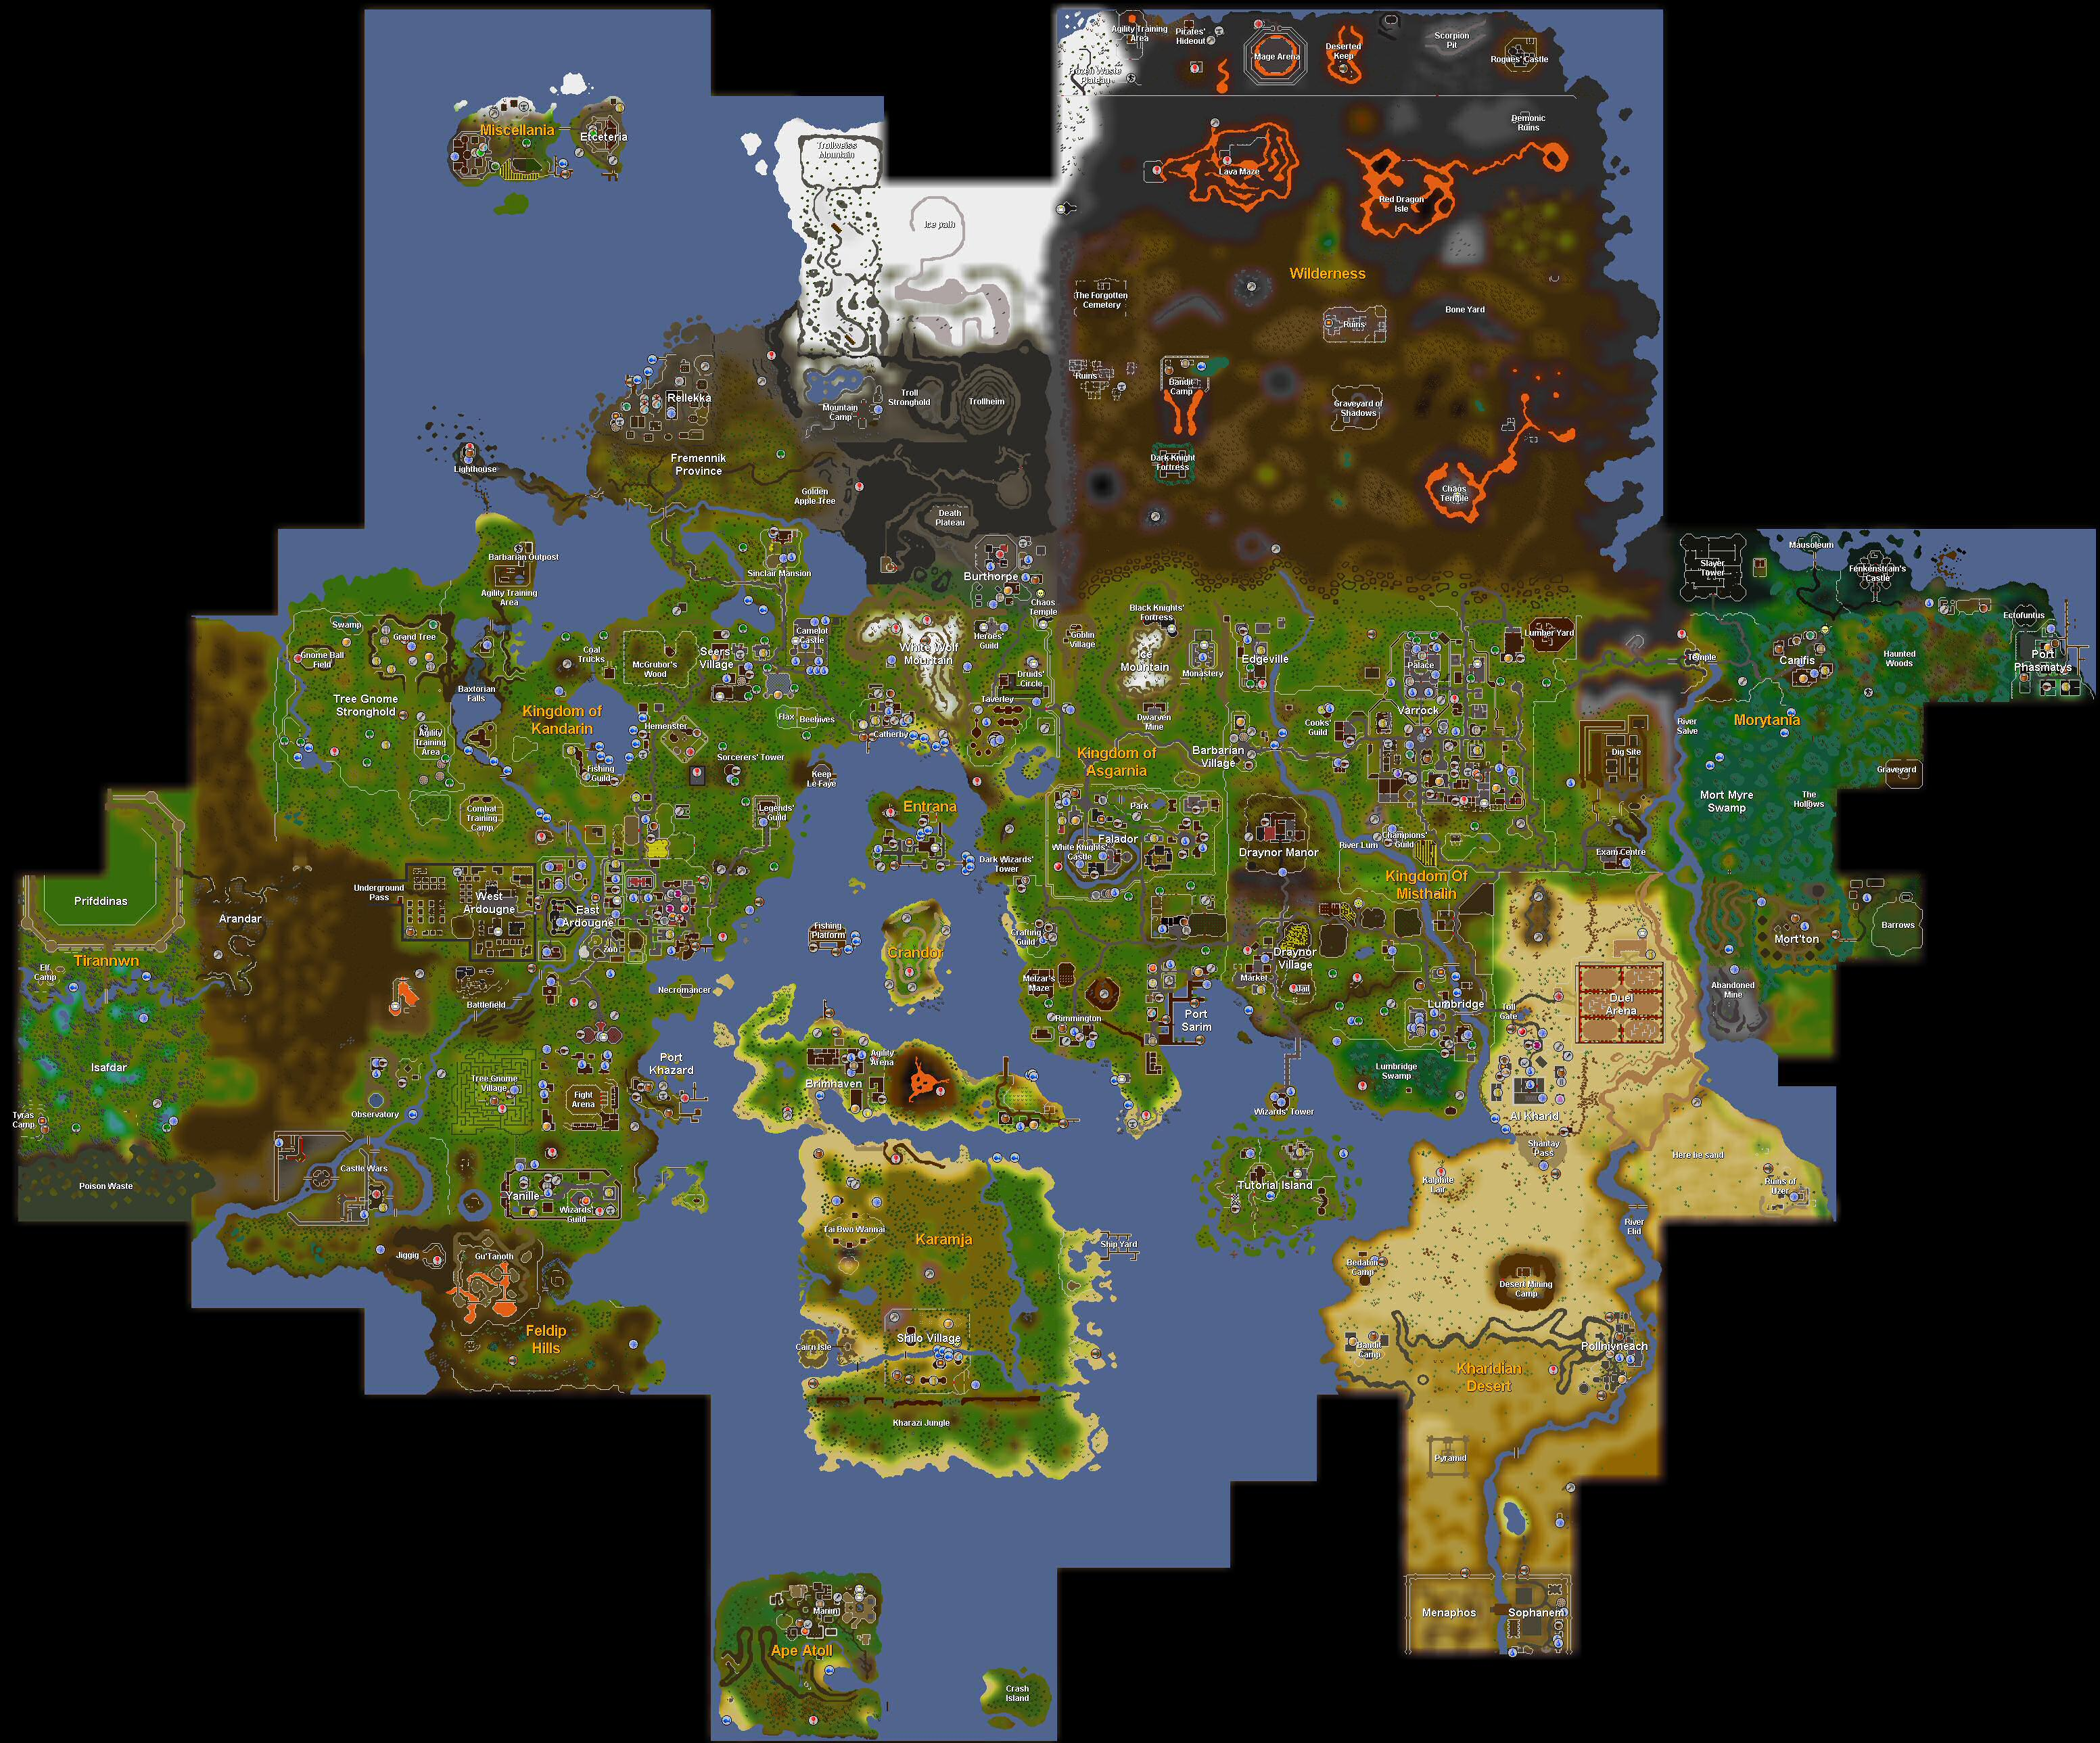 World map of runescape